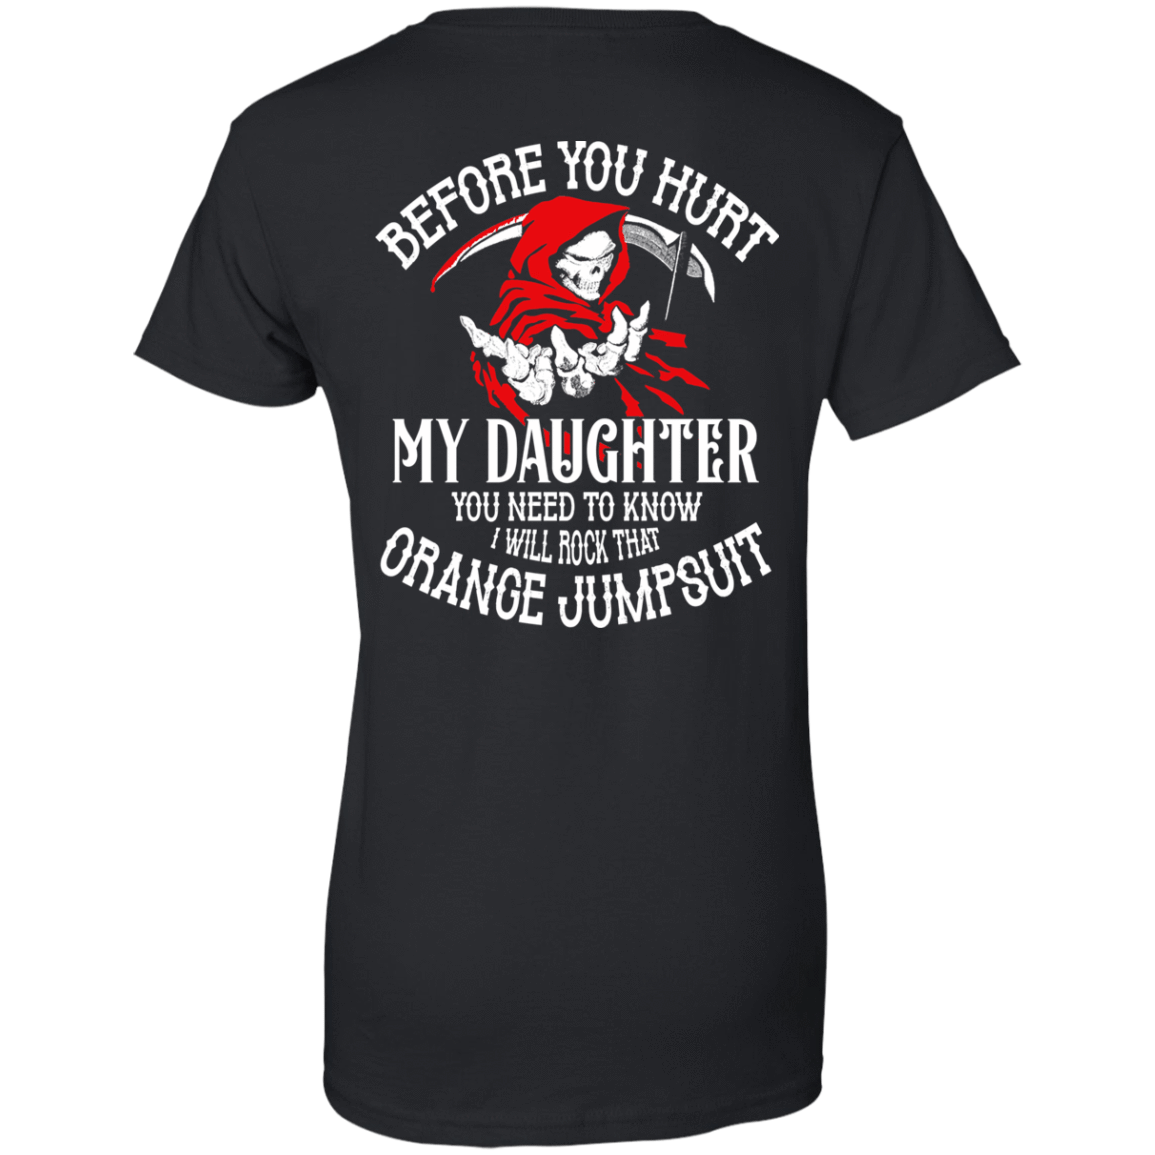 Before You Hurt My Daughter You Need To Know I Will Rock That Orange Jumpsuit T-Shirts, Hoodies 939-9248-77529101-44695 - Tee Ript